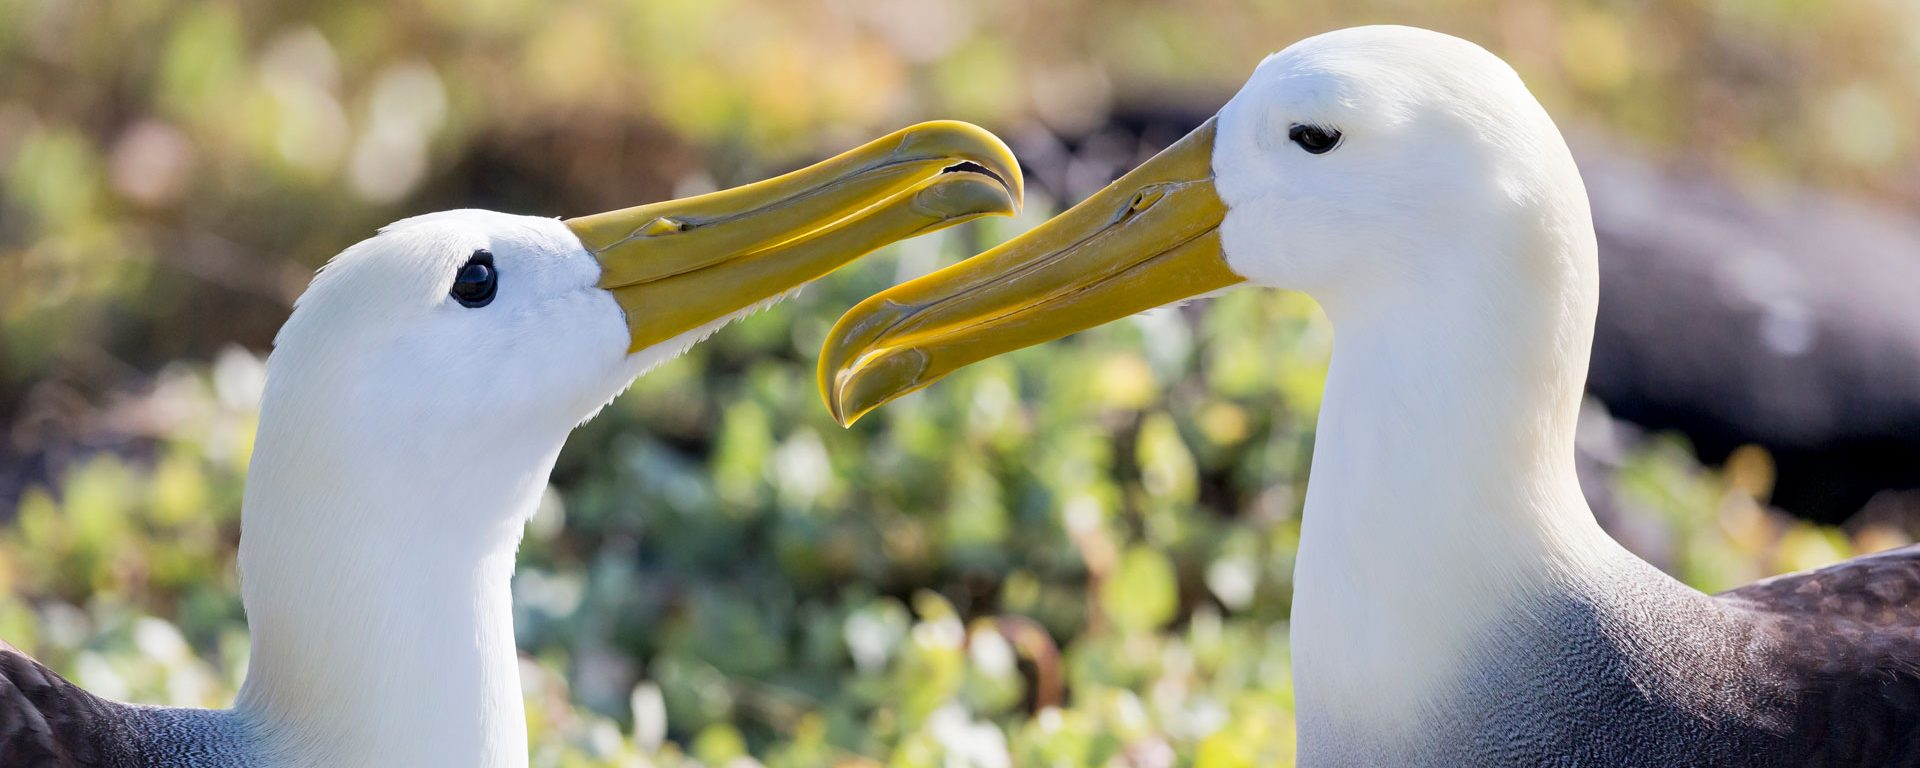 Two waved albatrosses interacting in Punta Suarez, Espanola Island, Galapagos